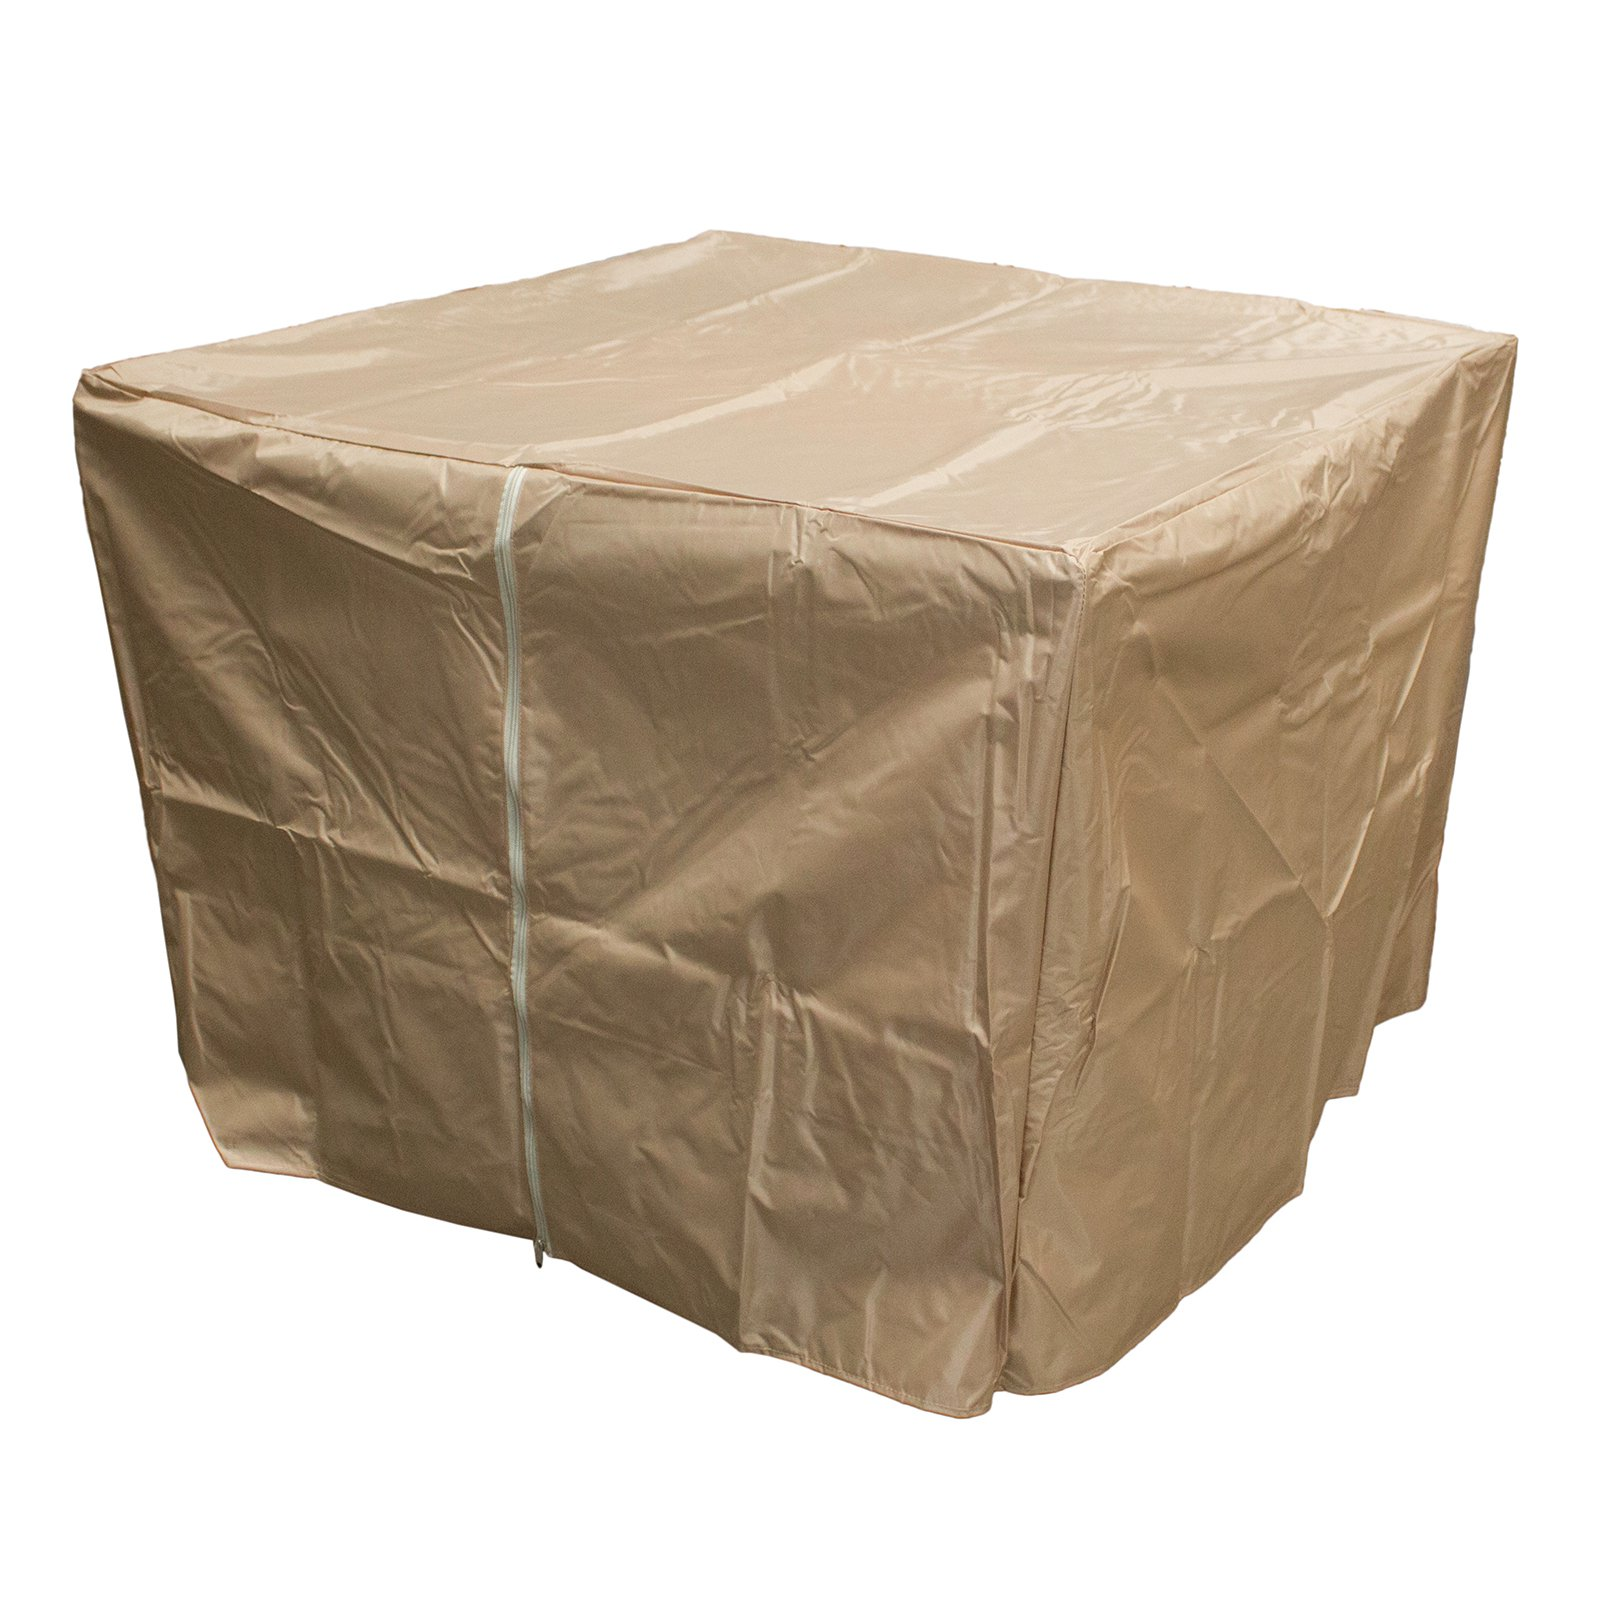 Hiland Heavy-Duty Firepit Cover, Camel